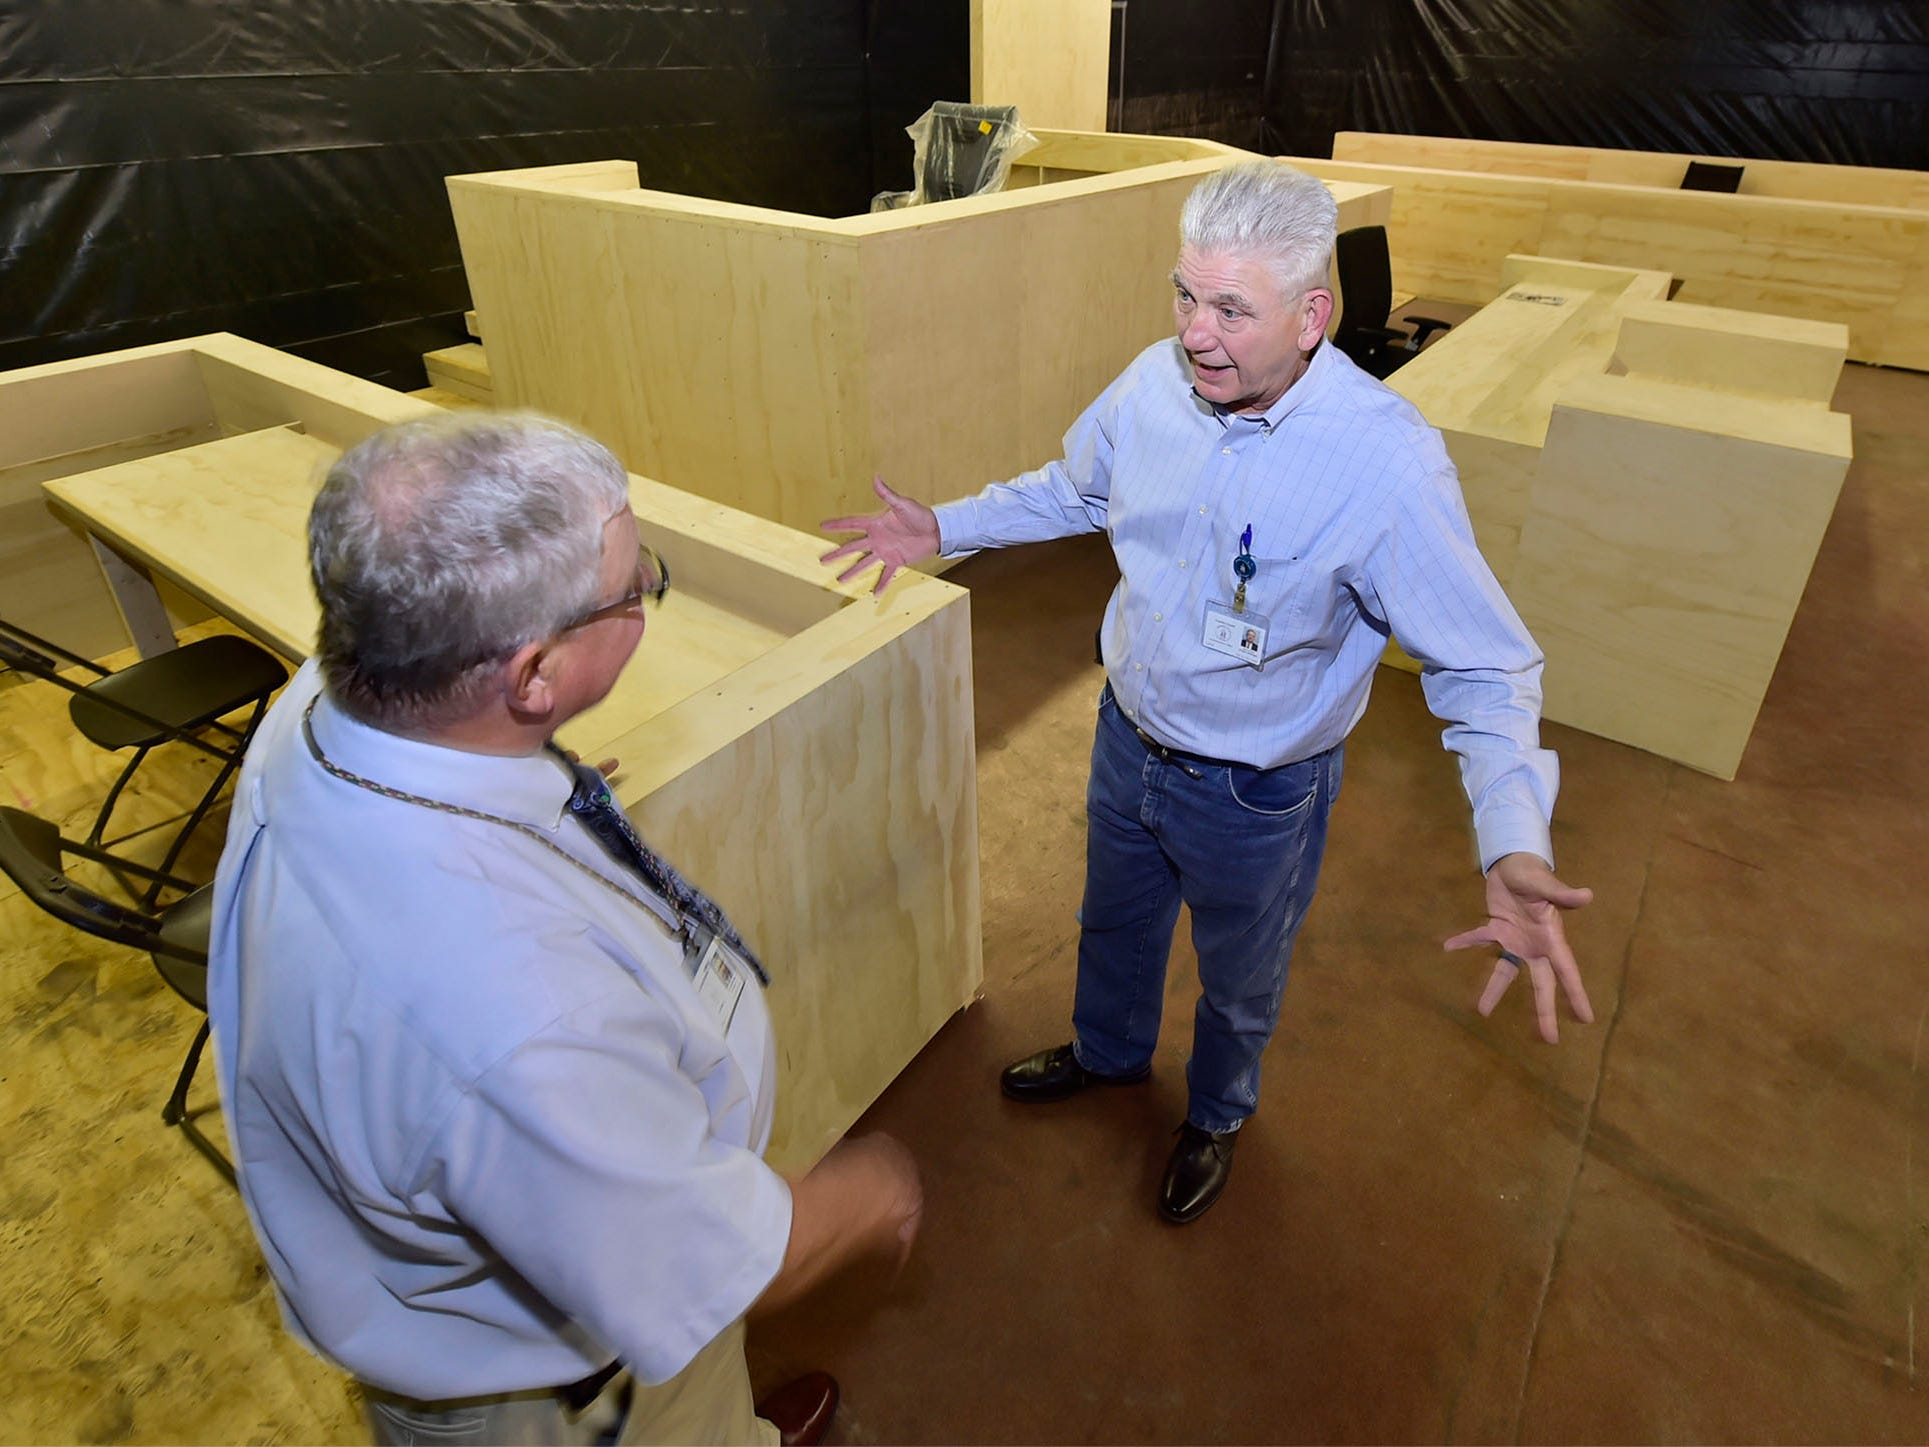 John Hart, project manager, talks to Terry Czap, left, a Franklin County court crier, at one of three life-size models of courtrooms on Wednesday, Oct. 3, 2018. The county set up the mock-ups in the old Jennings dealership on North Second Street between Grant and Broad streets, Chambersburg.